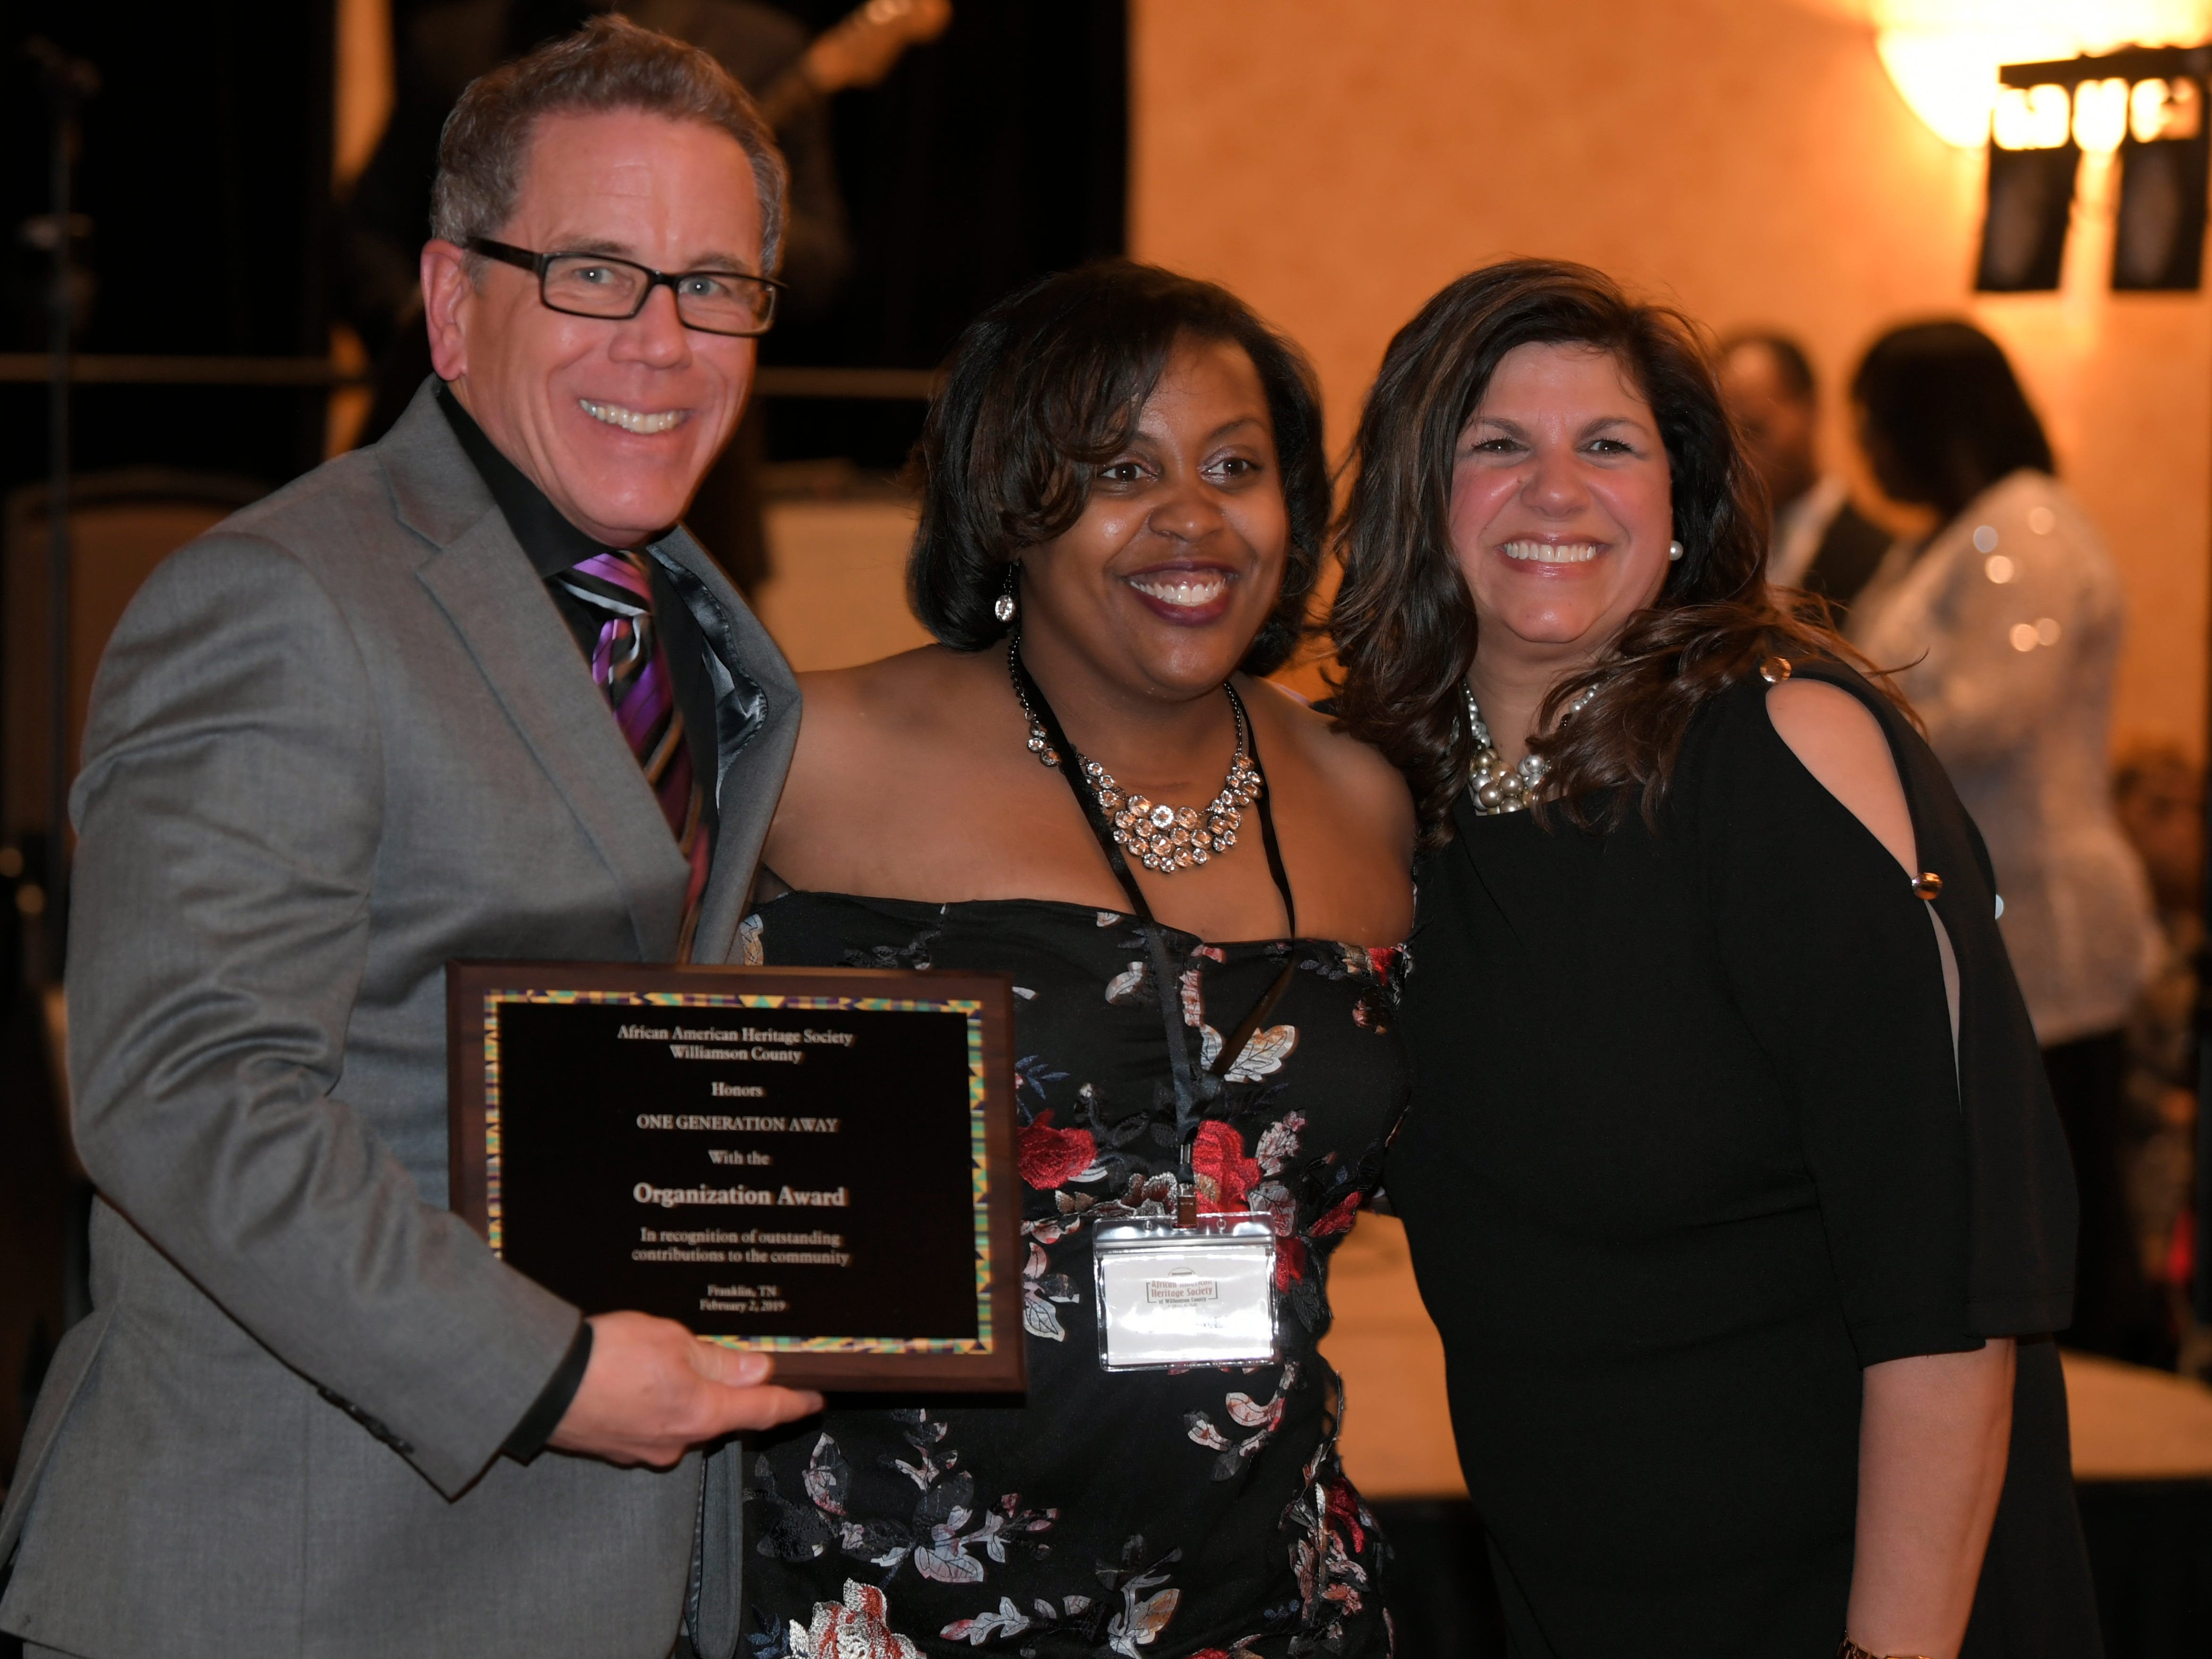 One Generation Away founder Chris Whitney and his wife, Elaine, were honored at the African American Heritage Society's 18th Annual Black Tie Affair at the Embassy Suites in Franklin on Sat., Feb. 2, 2019.